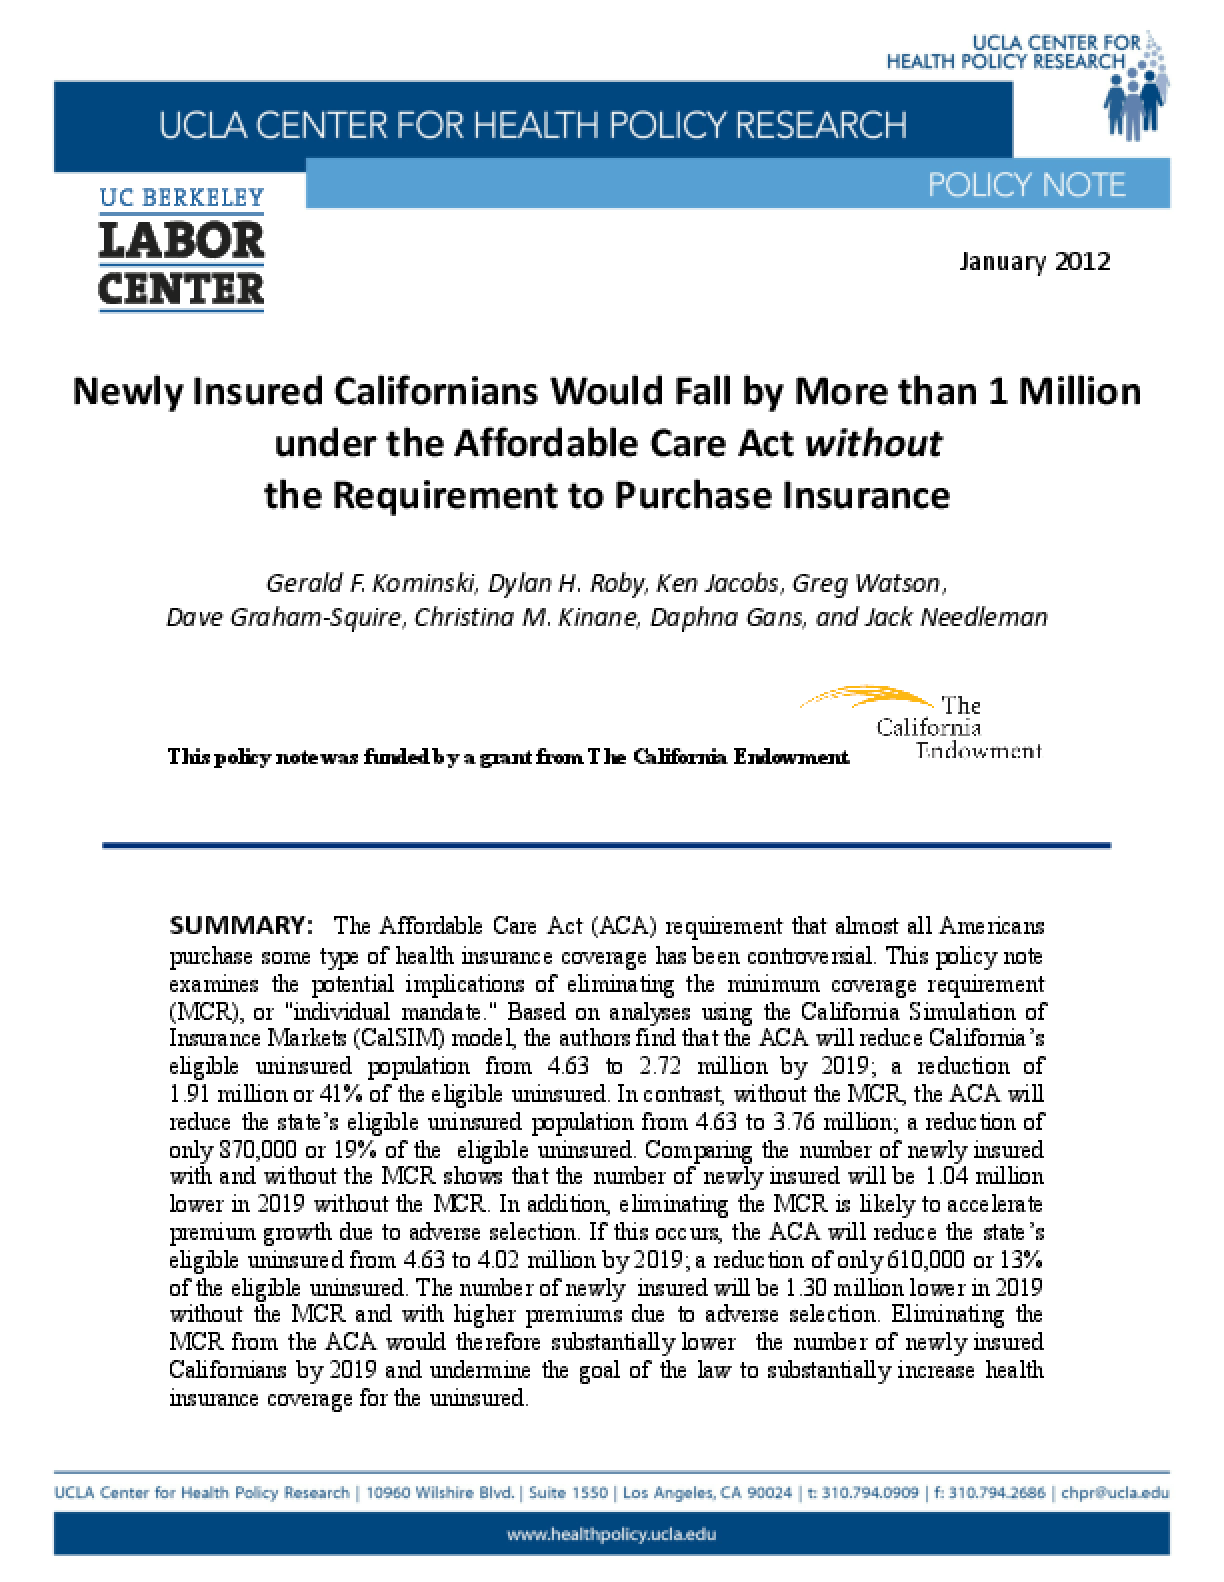 Newly Insured Californians Would Fall by More than 1 Million Under the Affordable Care Act Without the Requirement to Purchase Insurance